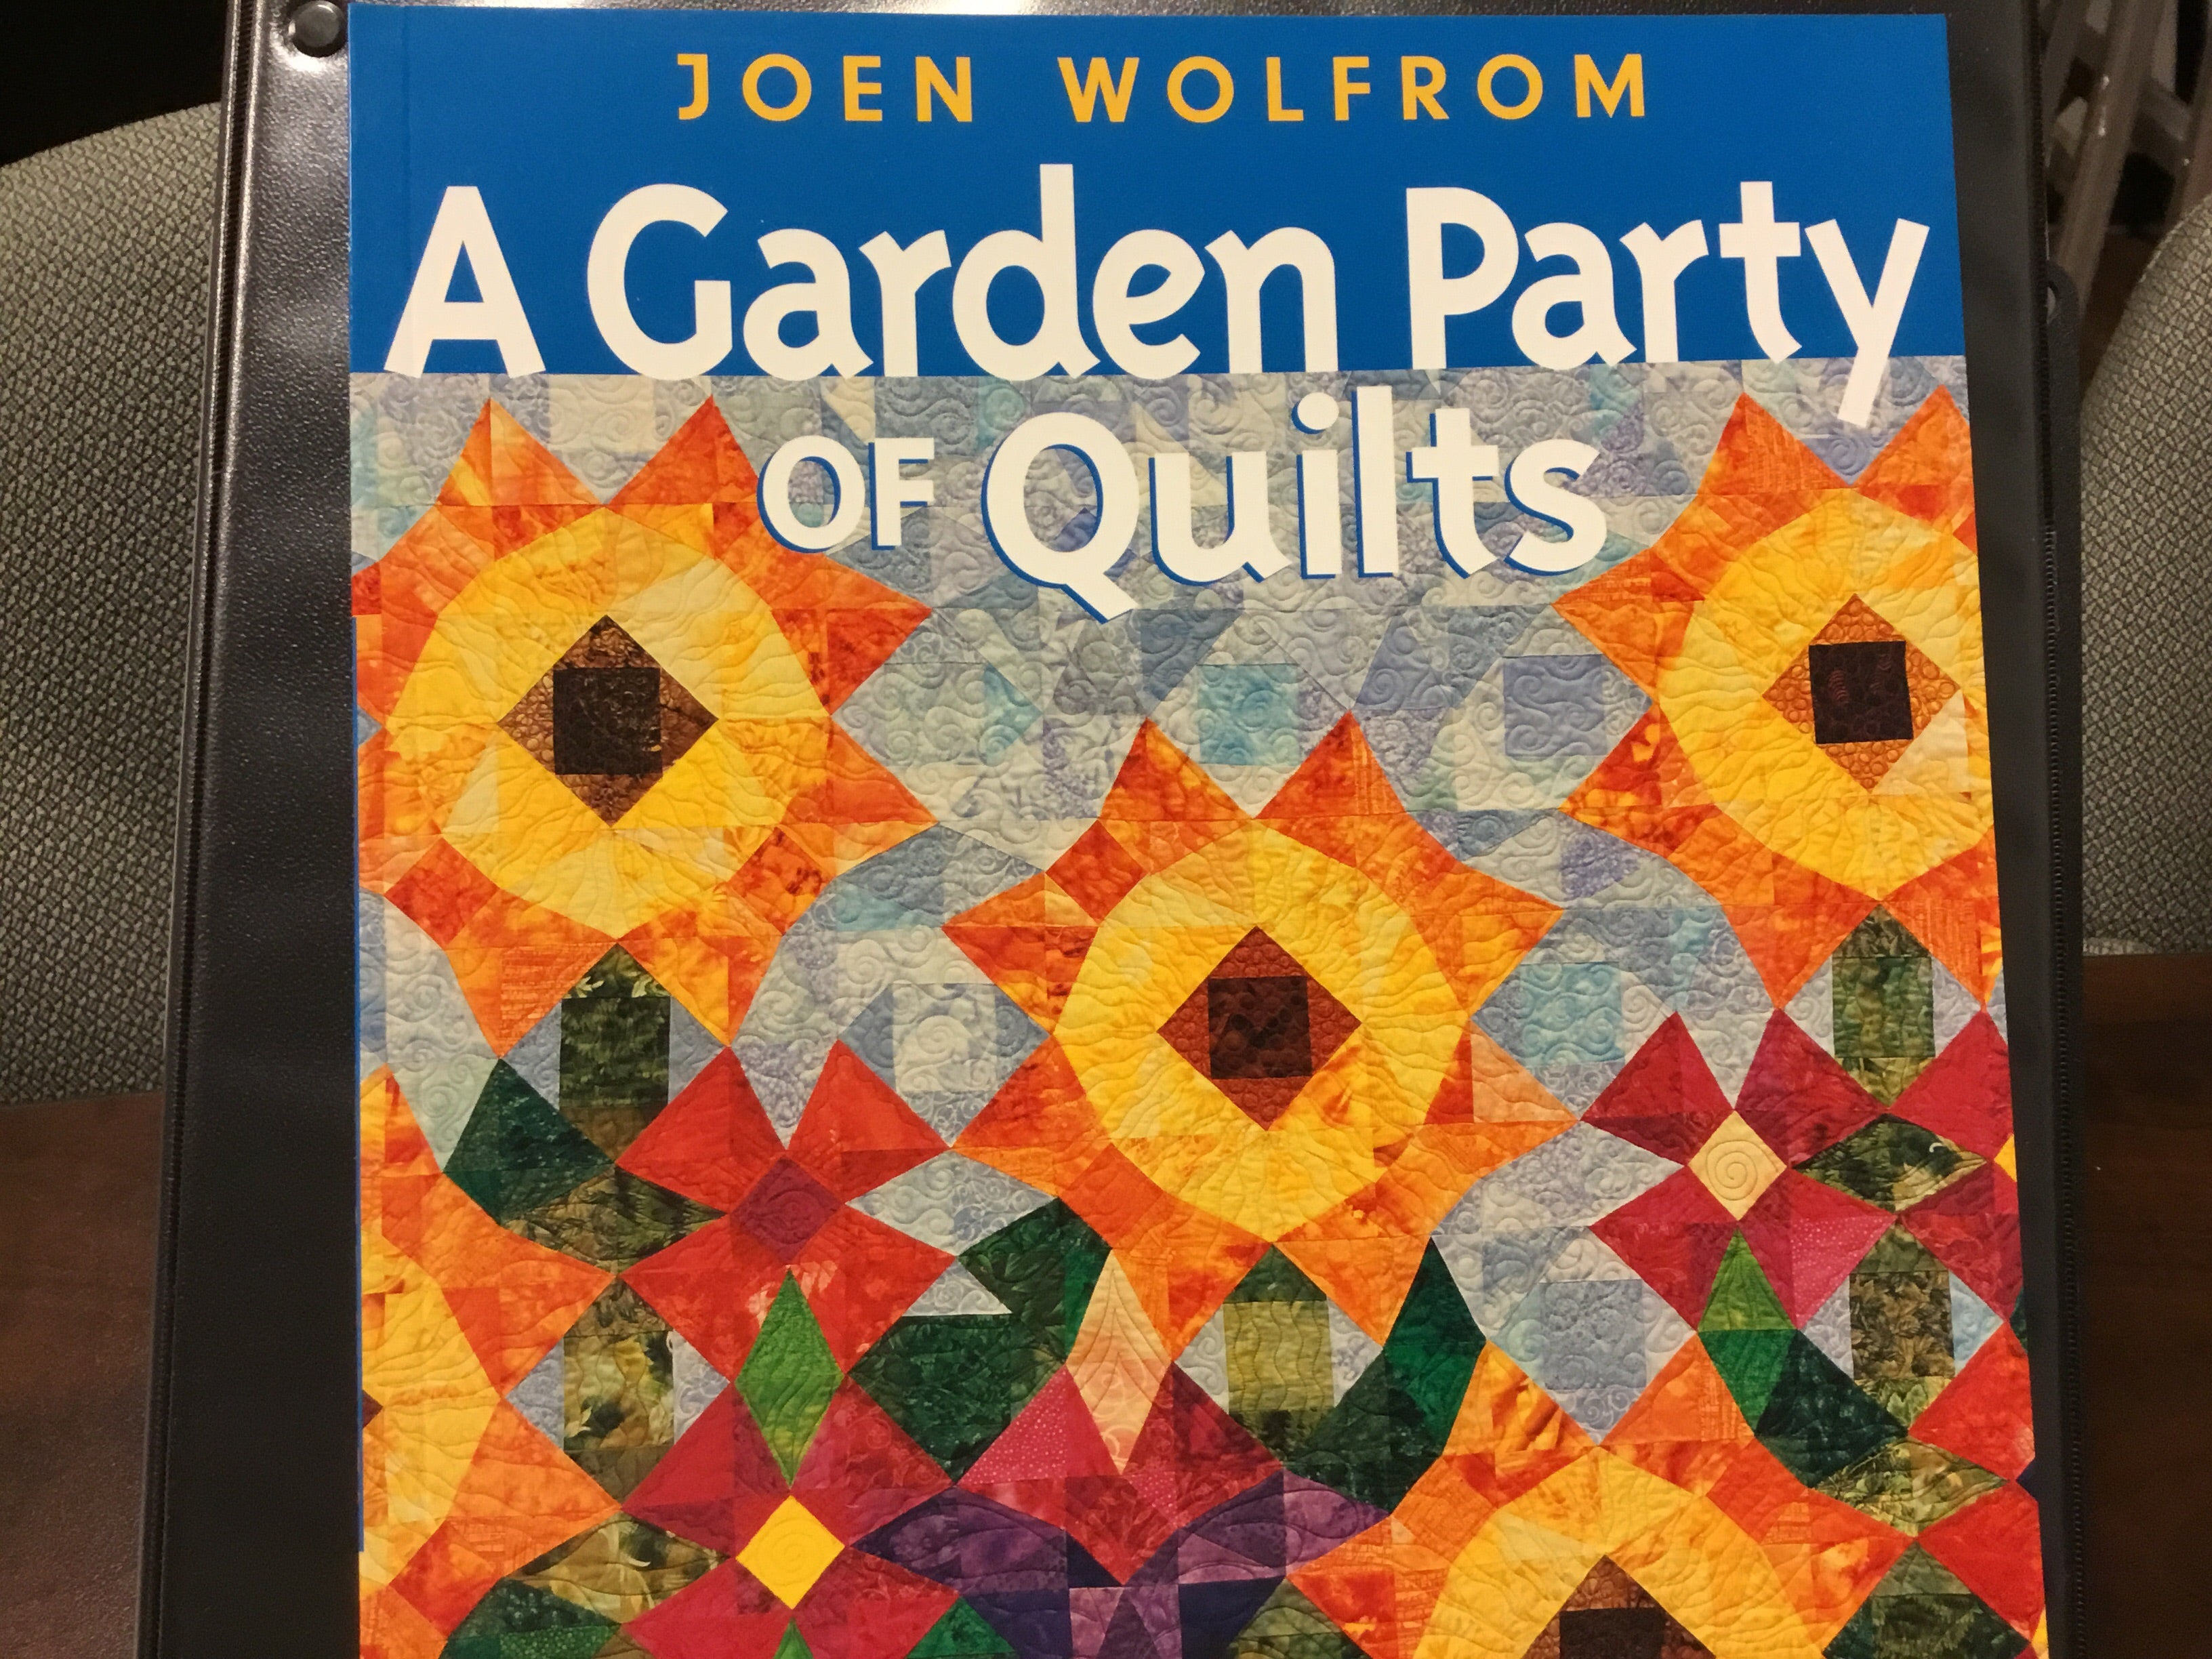 A Garden Party of Quilts